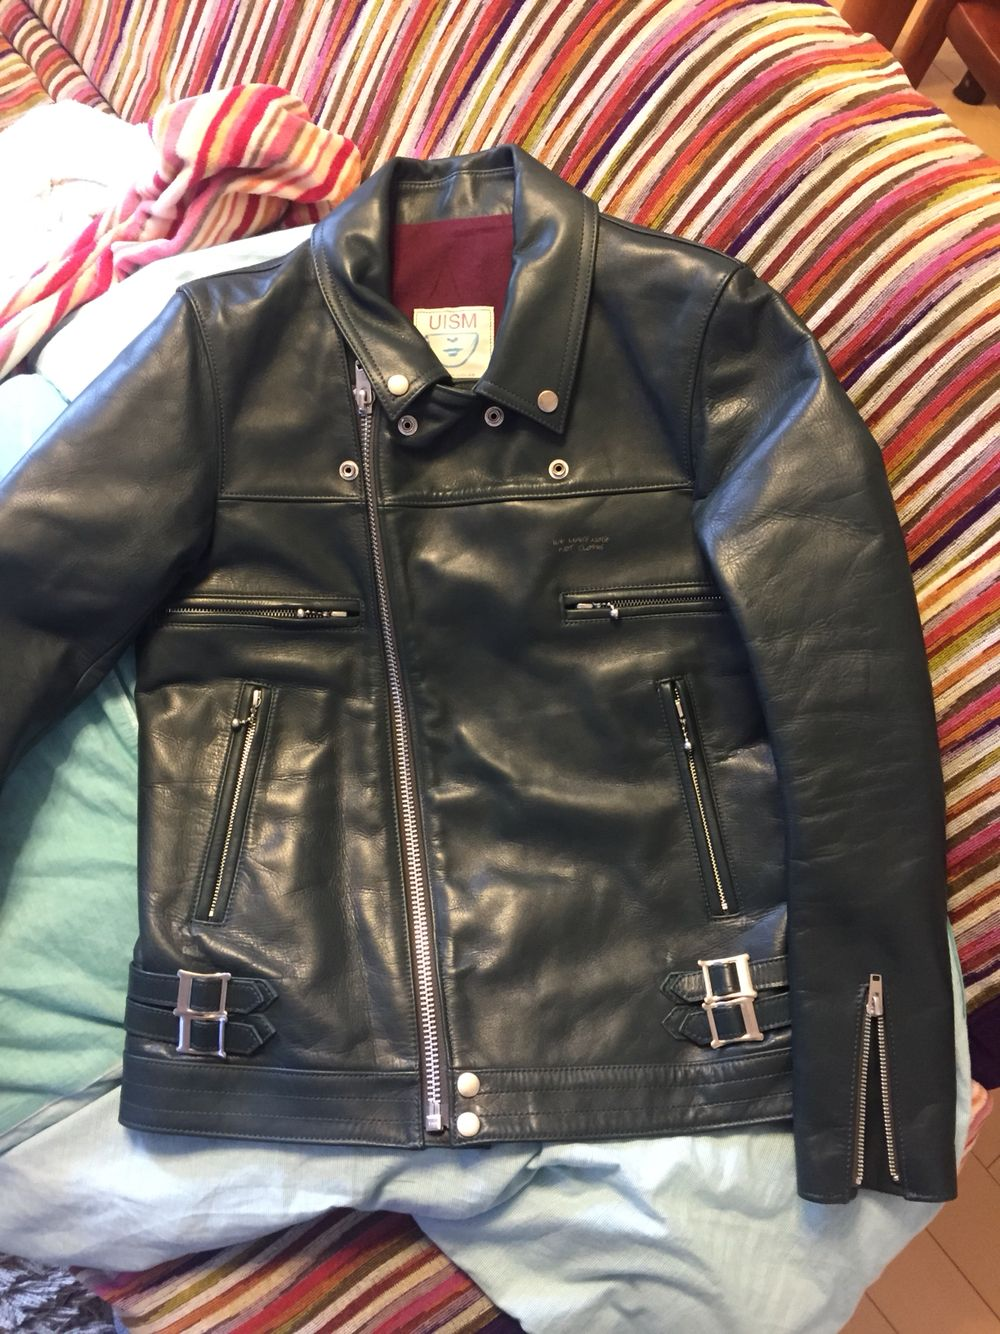 Undercover leather riders